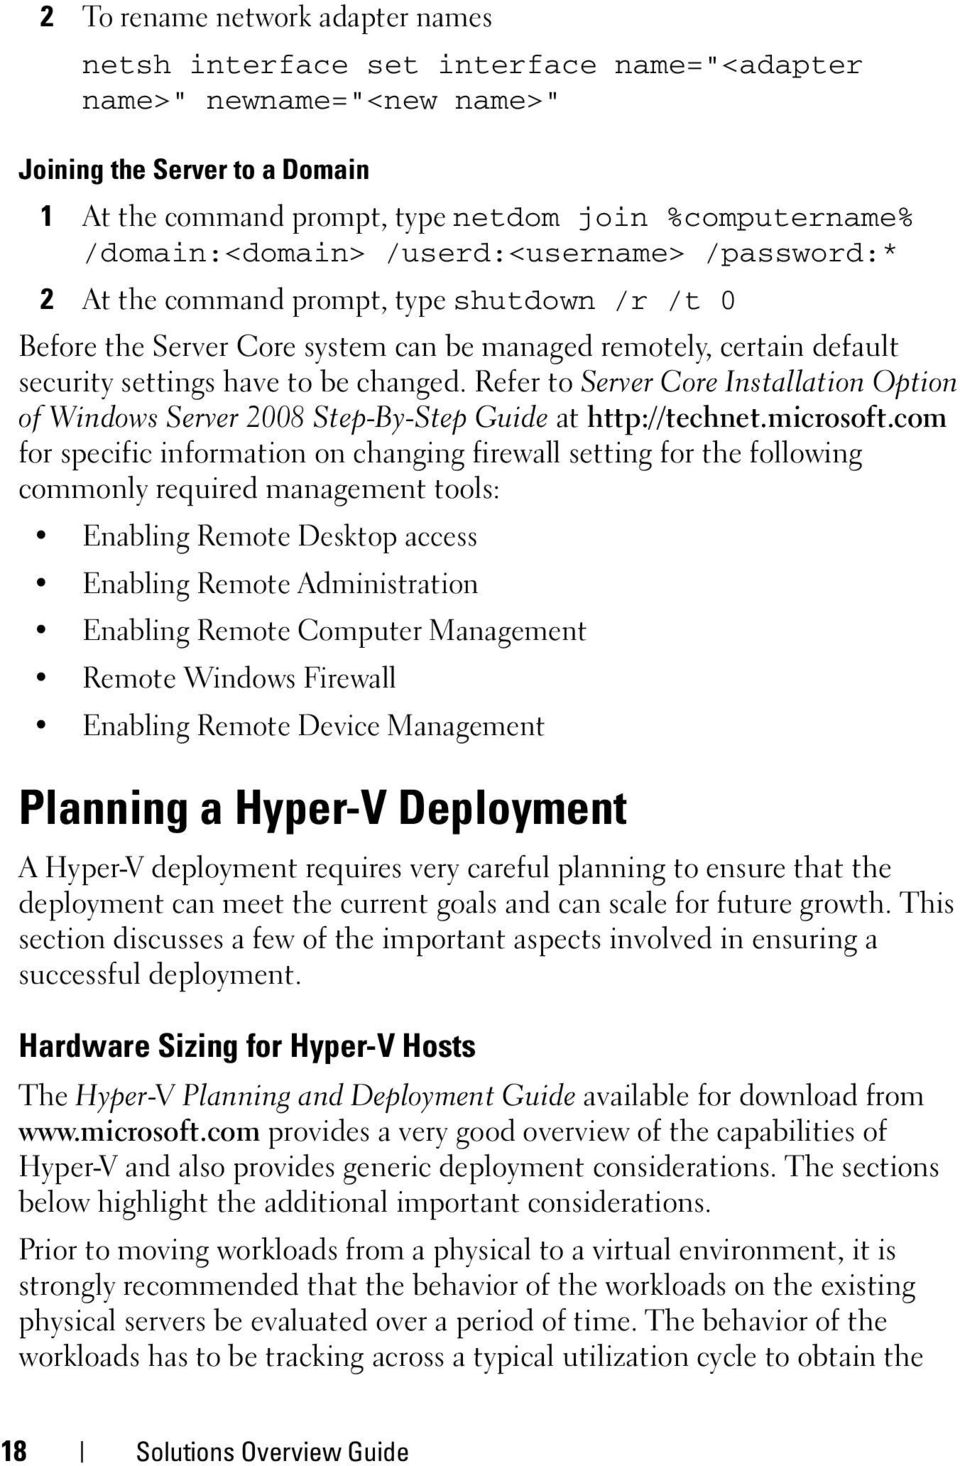 changed. Refer to Server Core Installation Option of Windows Server 2008 Step-By-Step Guide at http://technet.microsoft.